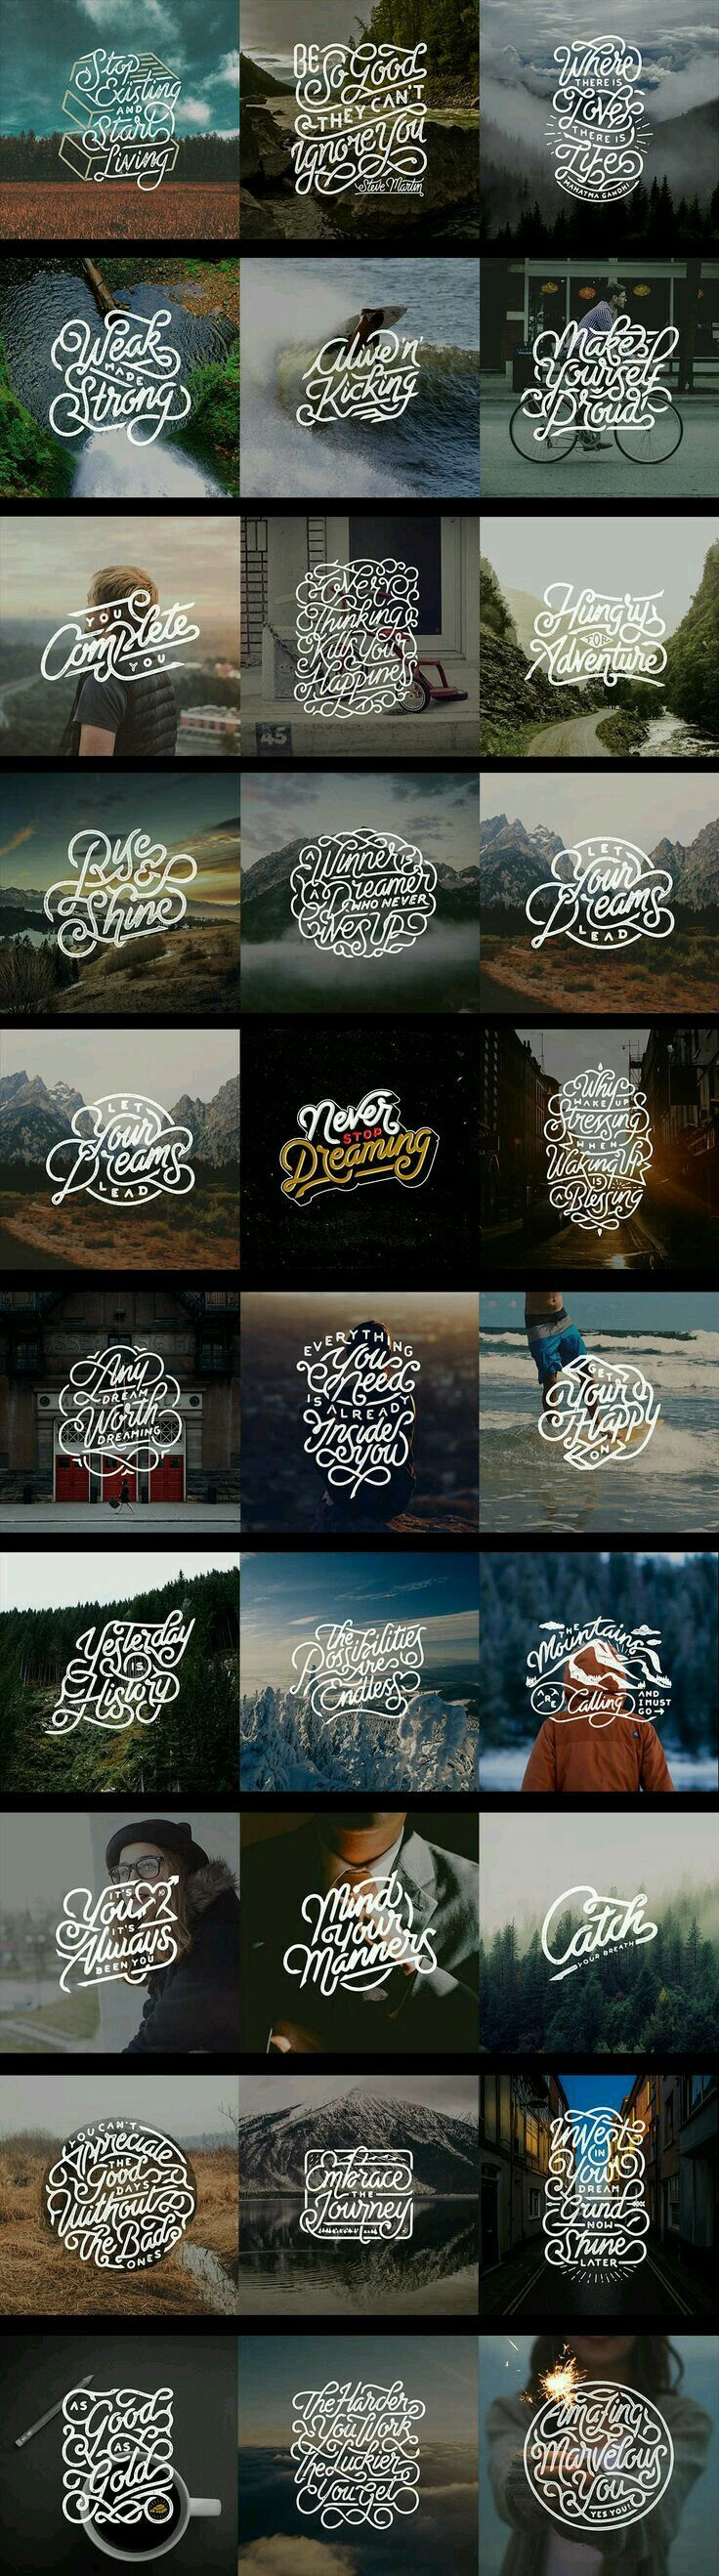 typography ideas #FredericClad #FredericClad